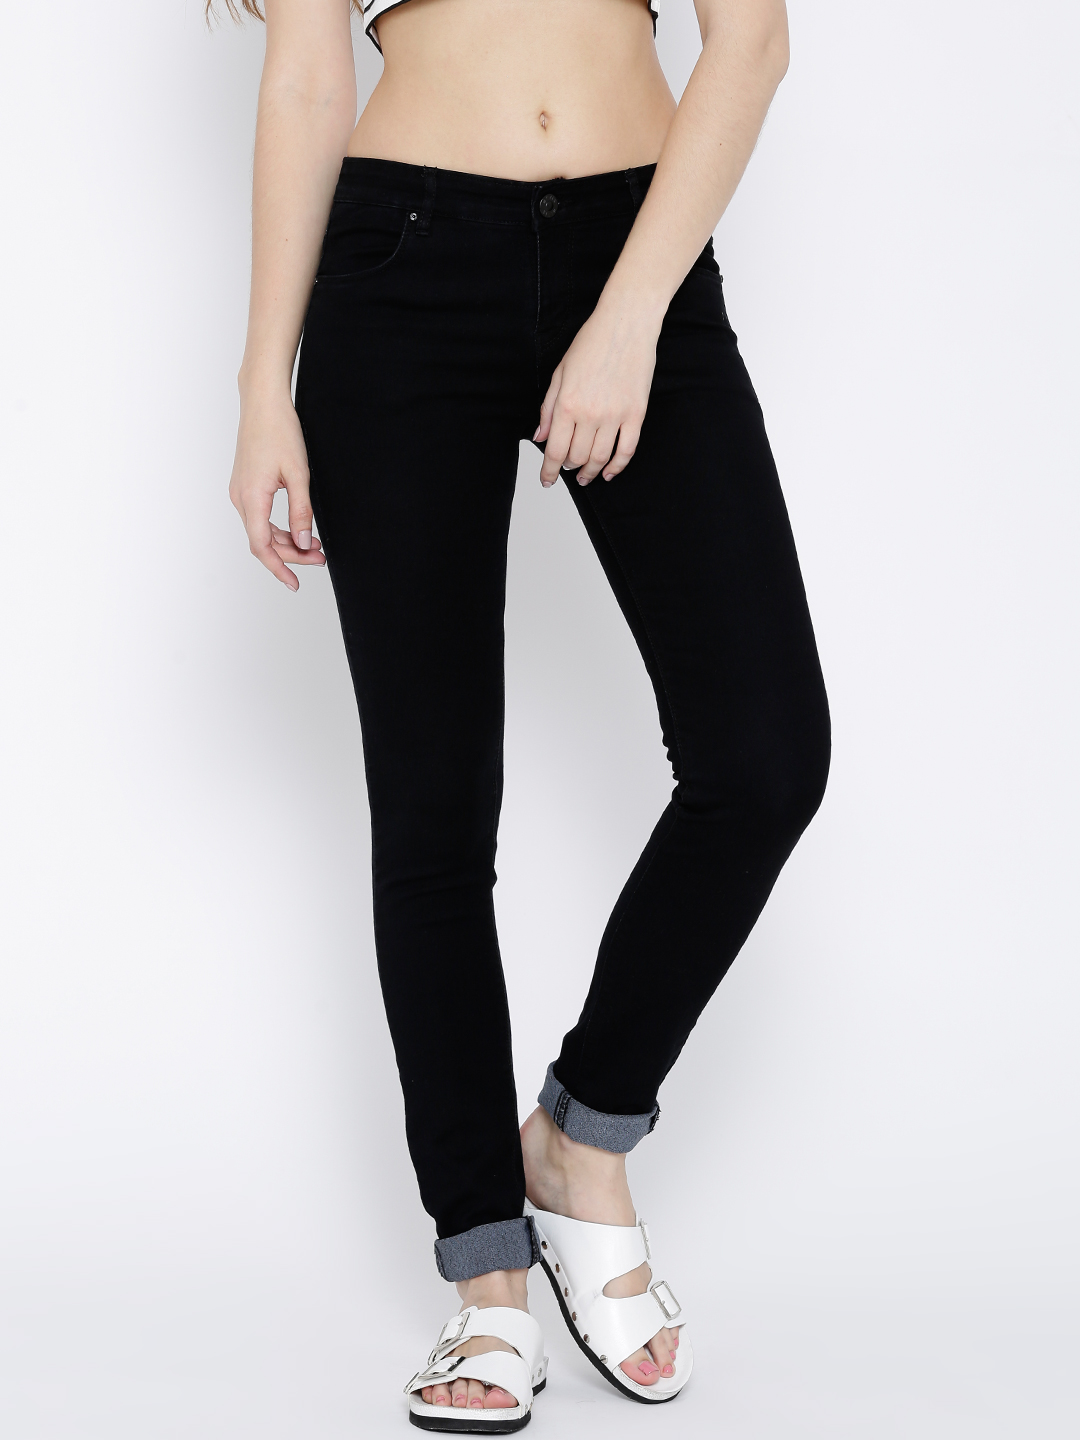 Devis Black Slim Fit Stretchable Jeans Price in India